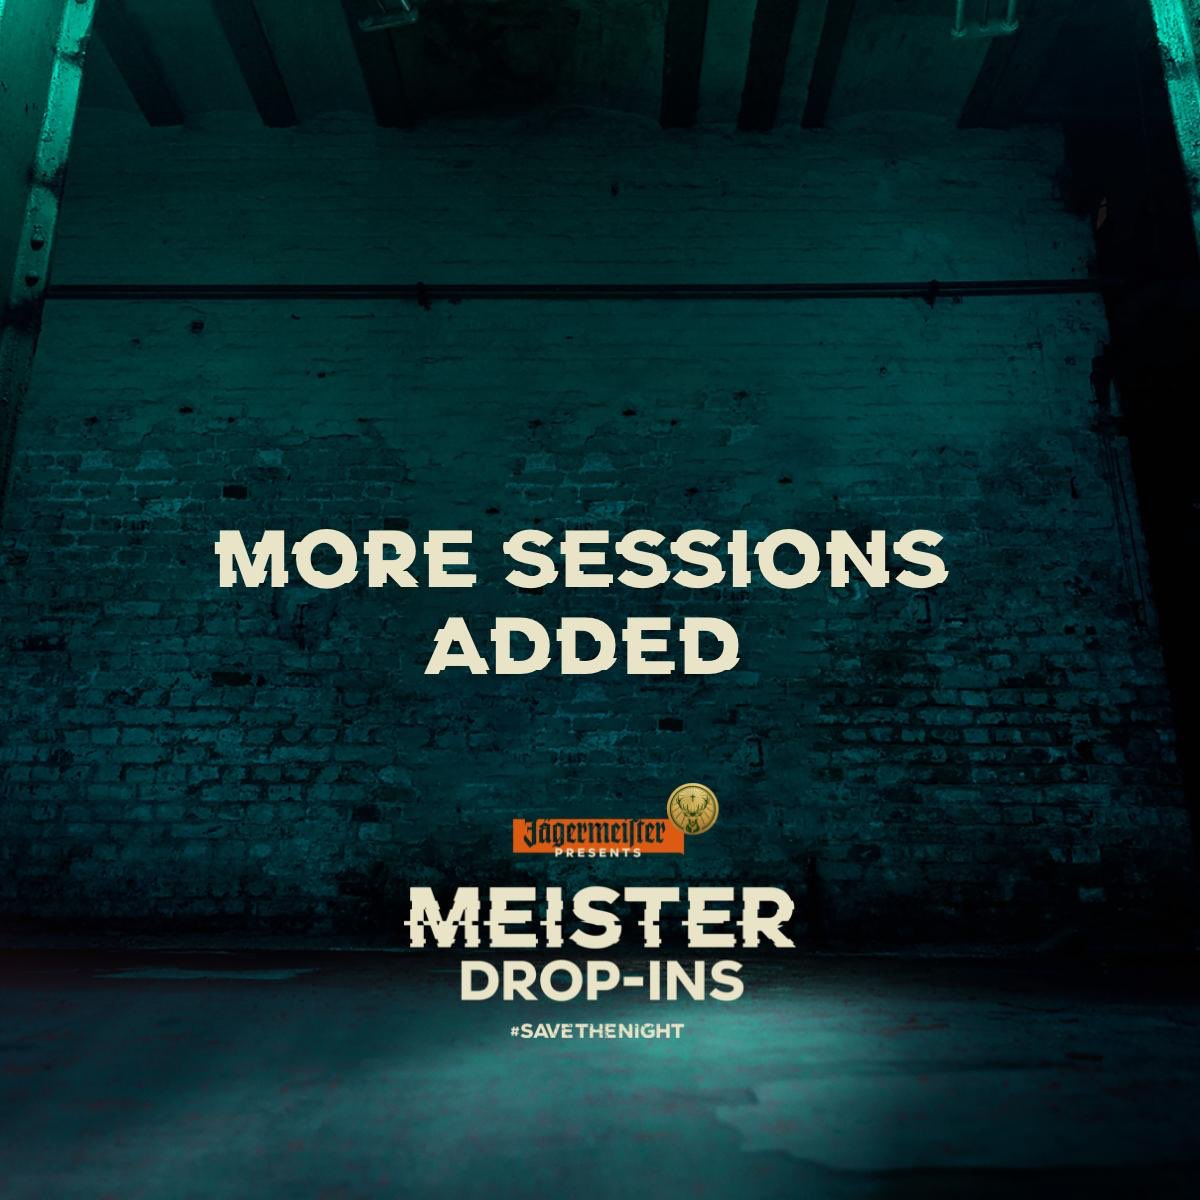 This thursdays MEISTER DROP-IN intimate session w/ @jagermeistersa is co-hosted by : @OfficialGZY We break down EMSAMU + talk production hints and tips. To join/rsvp : bit.ly/EmsamuBD